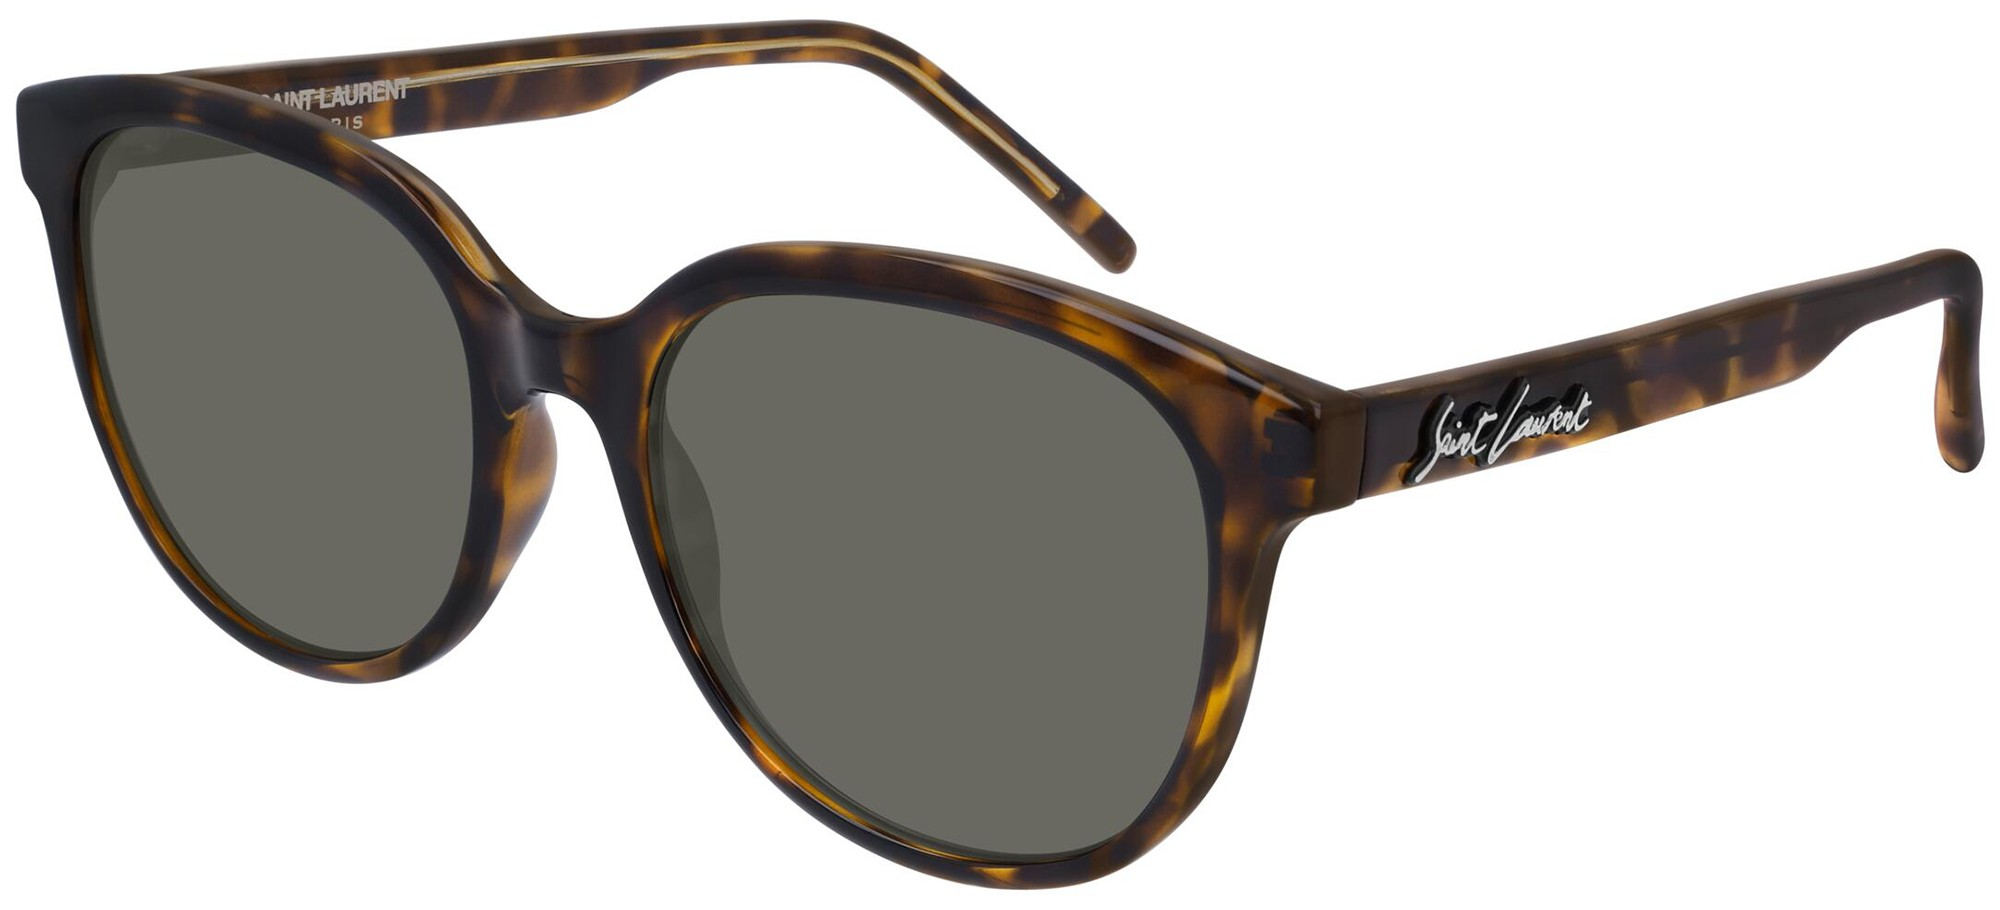 Saint Laurent sunglasses SL 317